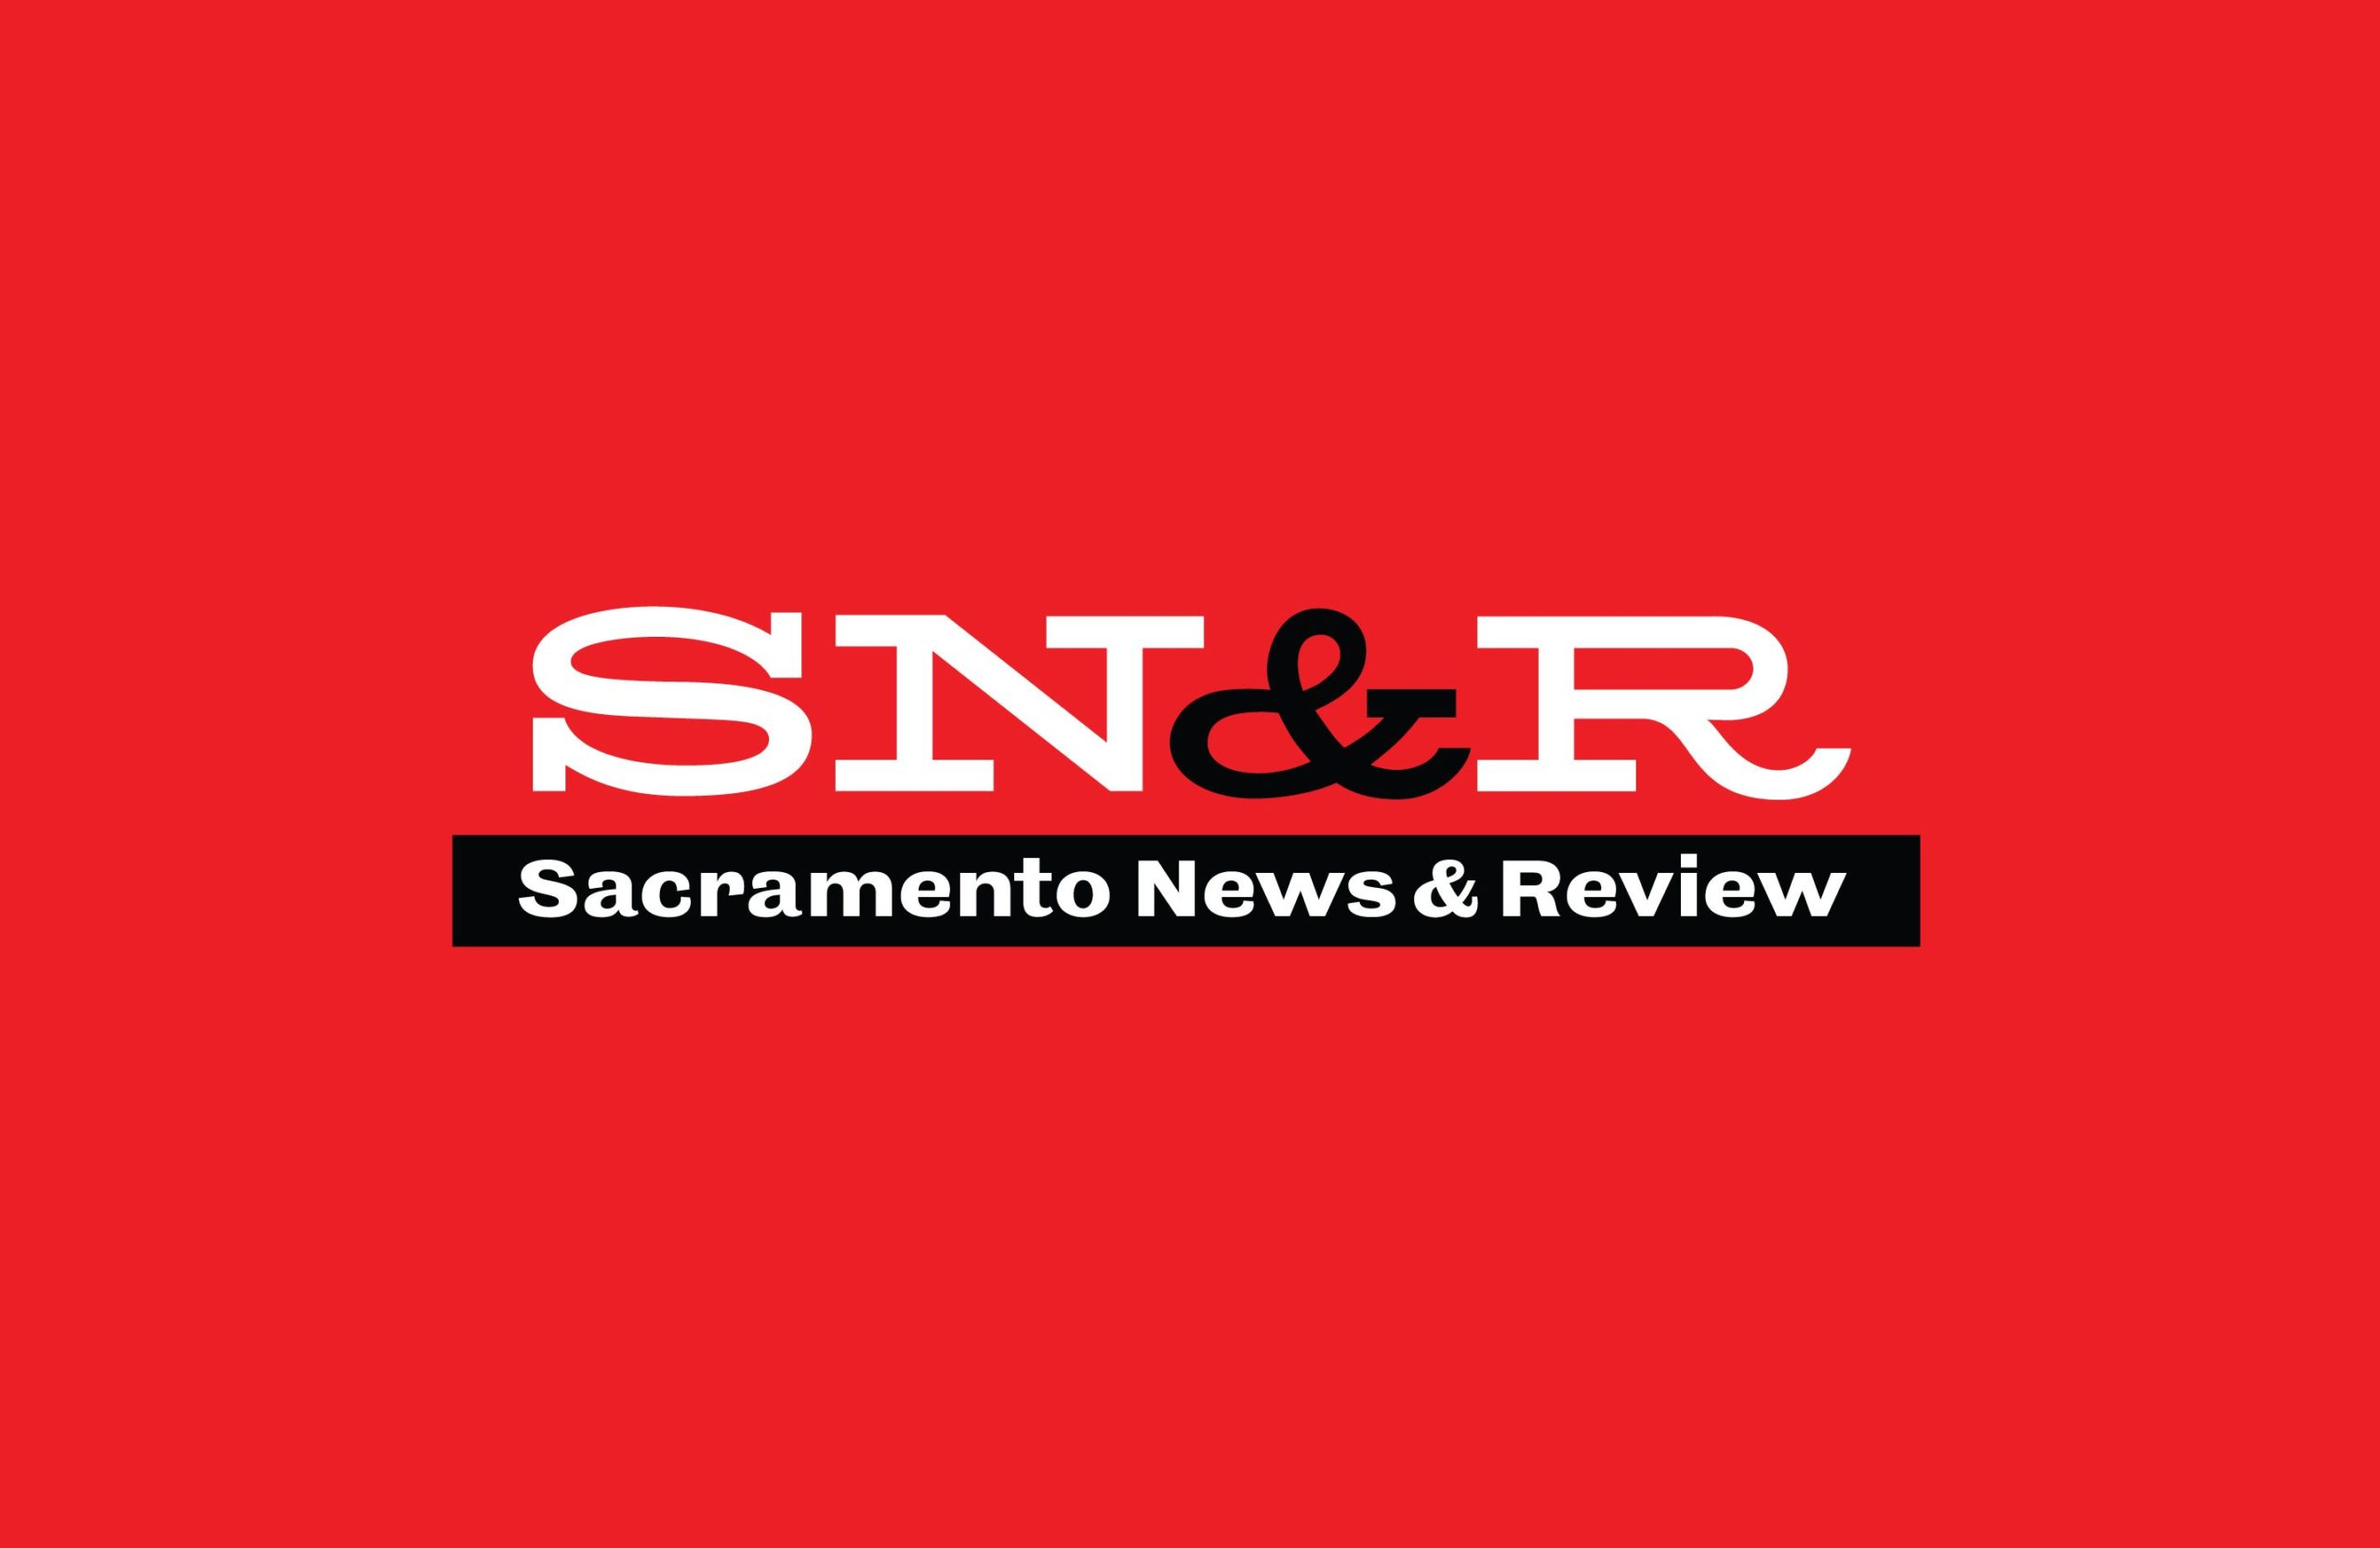 Serial puts the spotlight on radio producers Julie Snyder and Sarah Koenig > Serial co-founders Koenig and Snyder talked long-form journalism, basements and Adnan Syed to a packed house at the Mondavi Center.